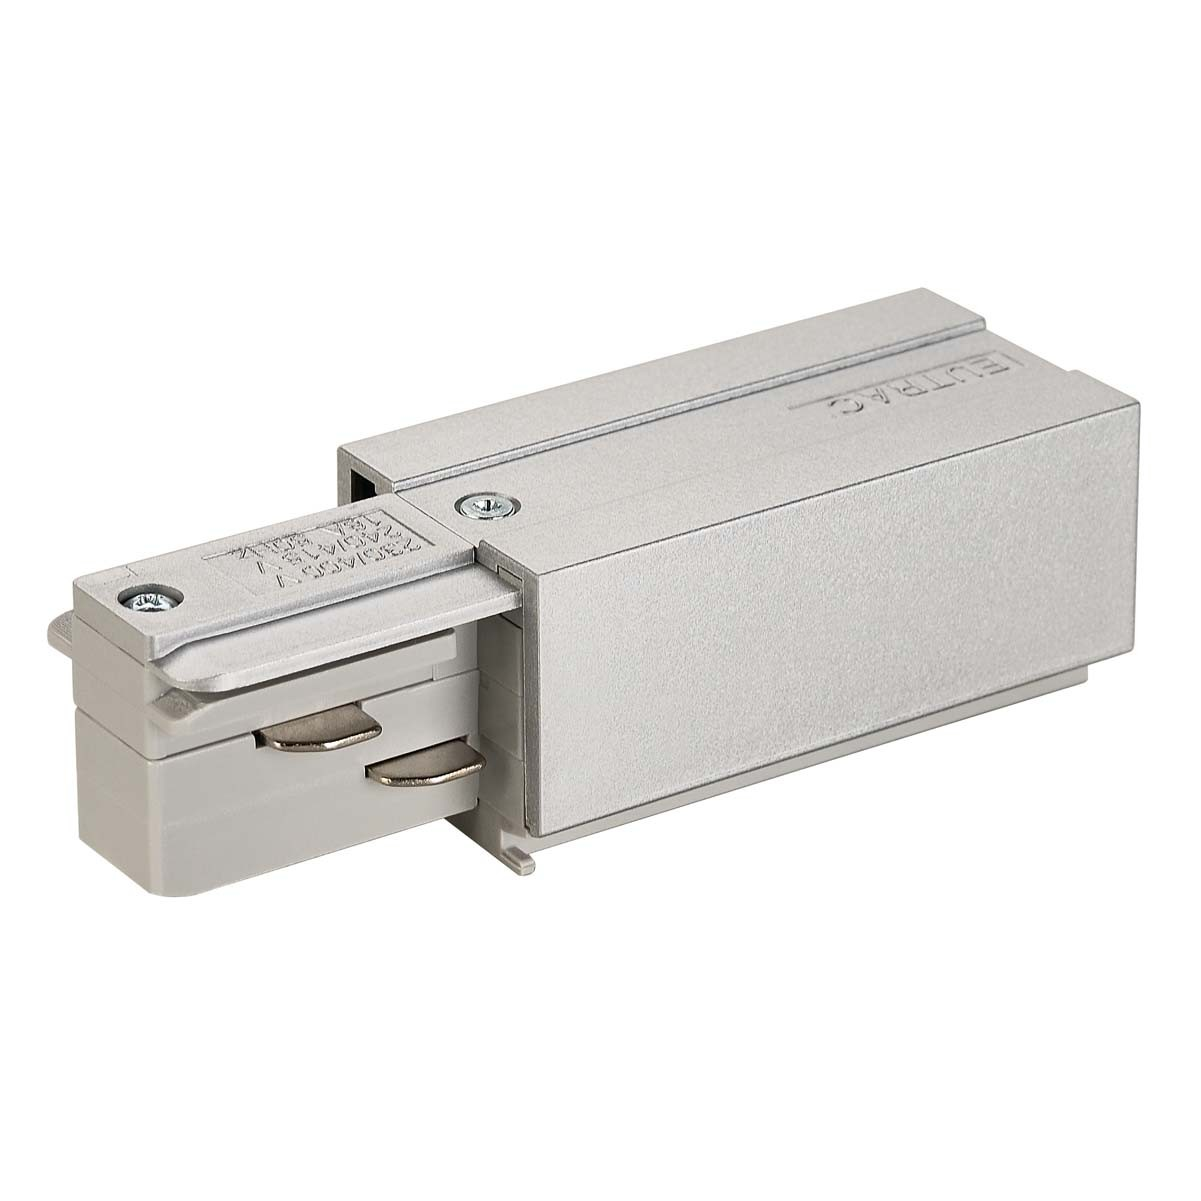 SLV 145514 Feed In Earth Left Silver Grey Eutrac 3 Circuit 240V Surface Track Accessory